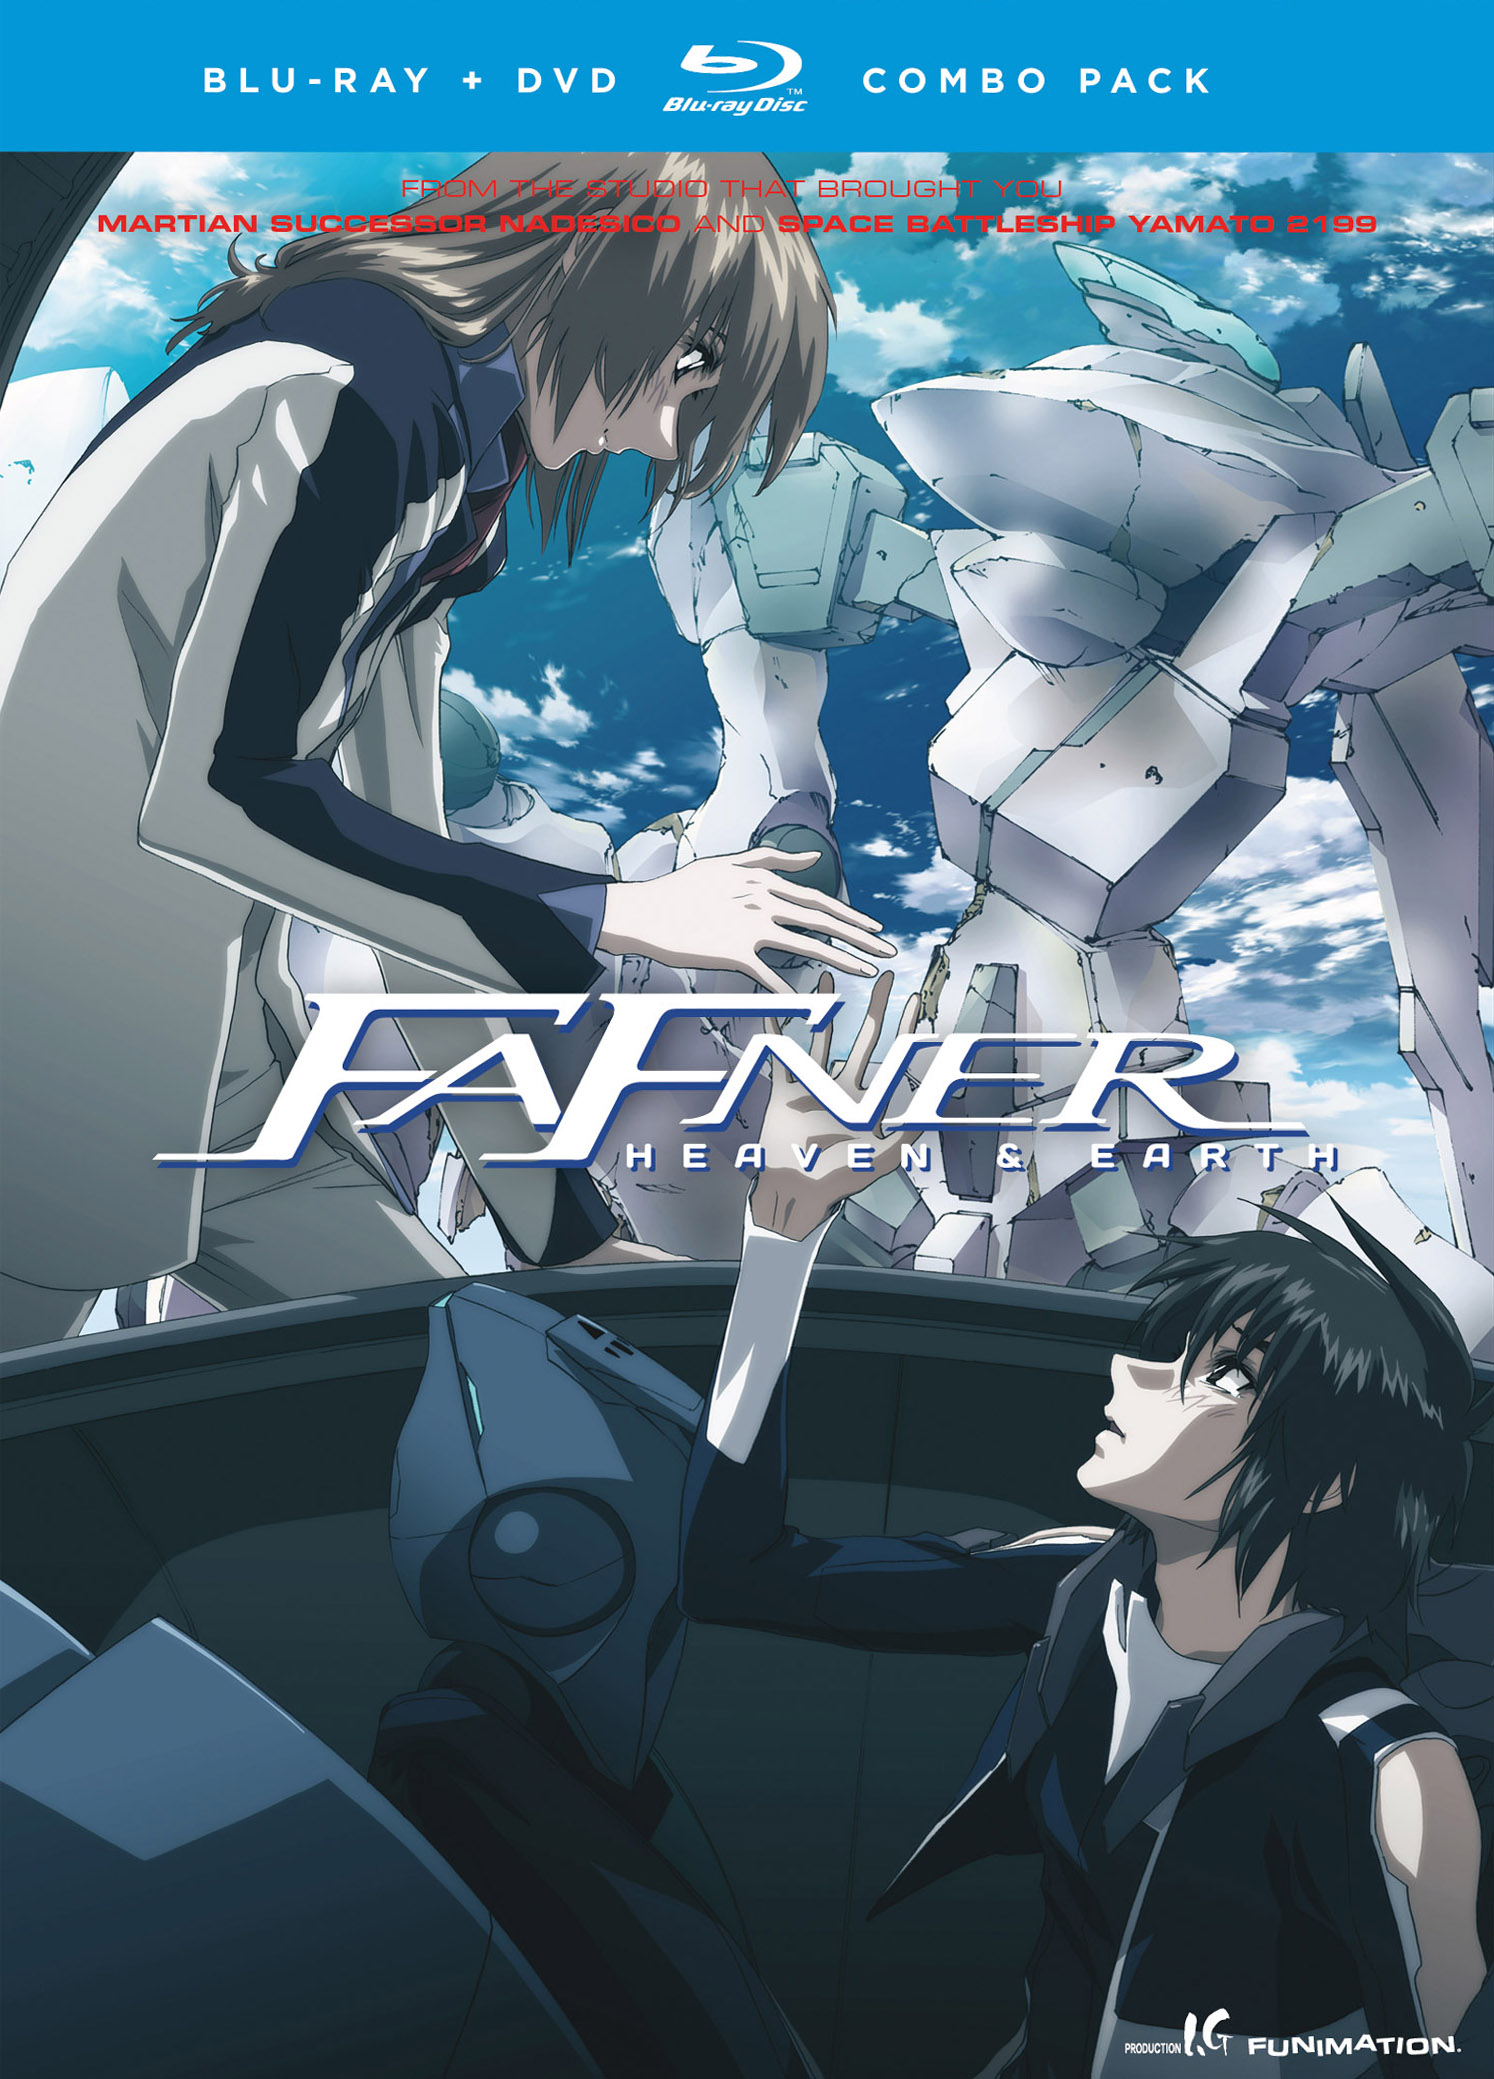 Fafner: Heaven and Earth (2010)